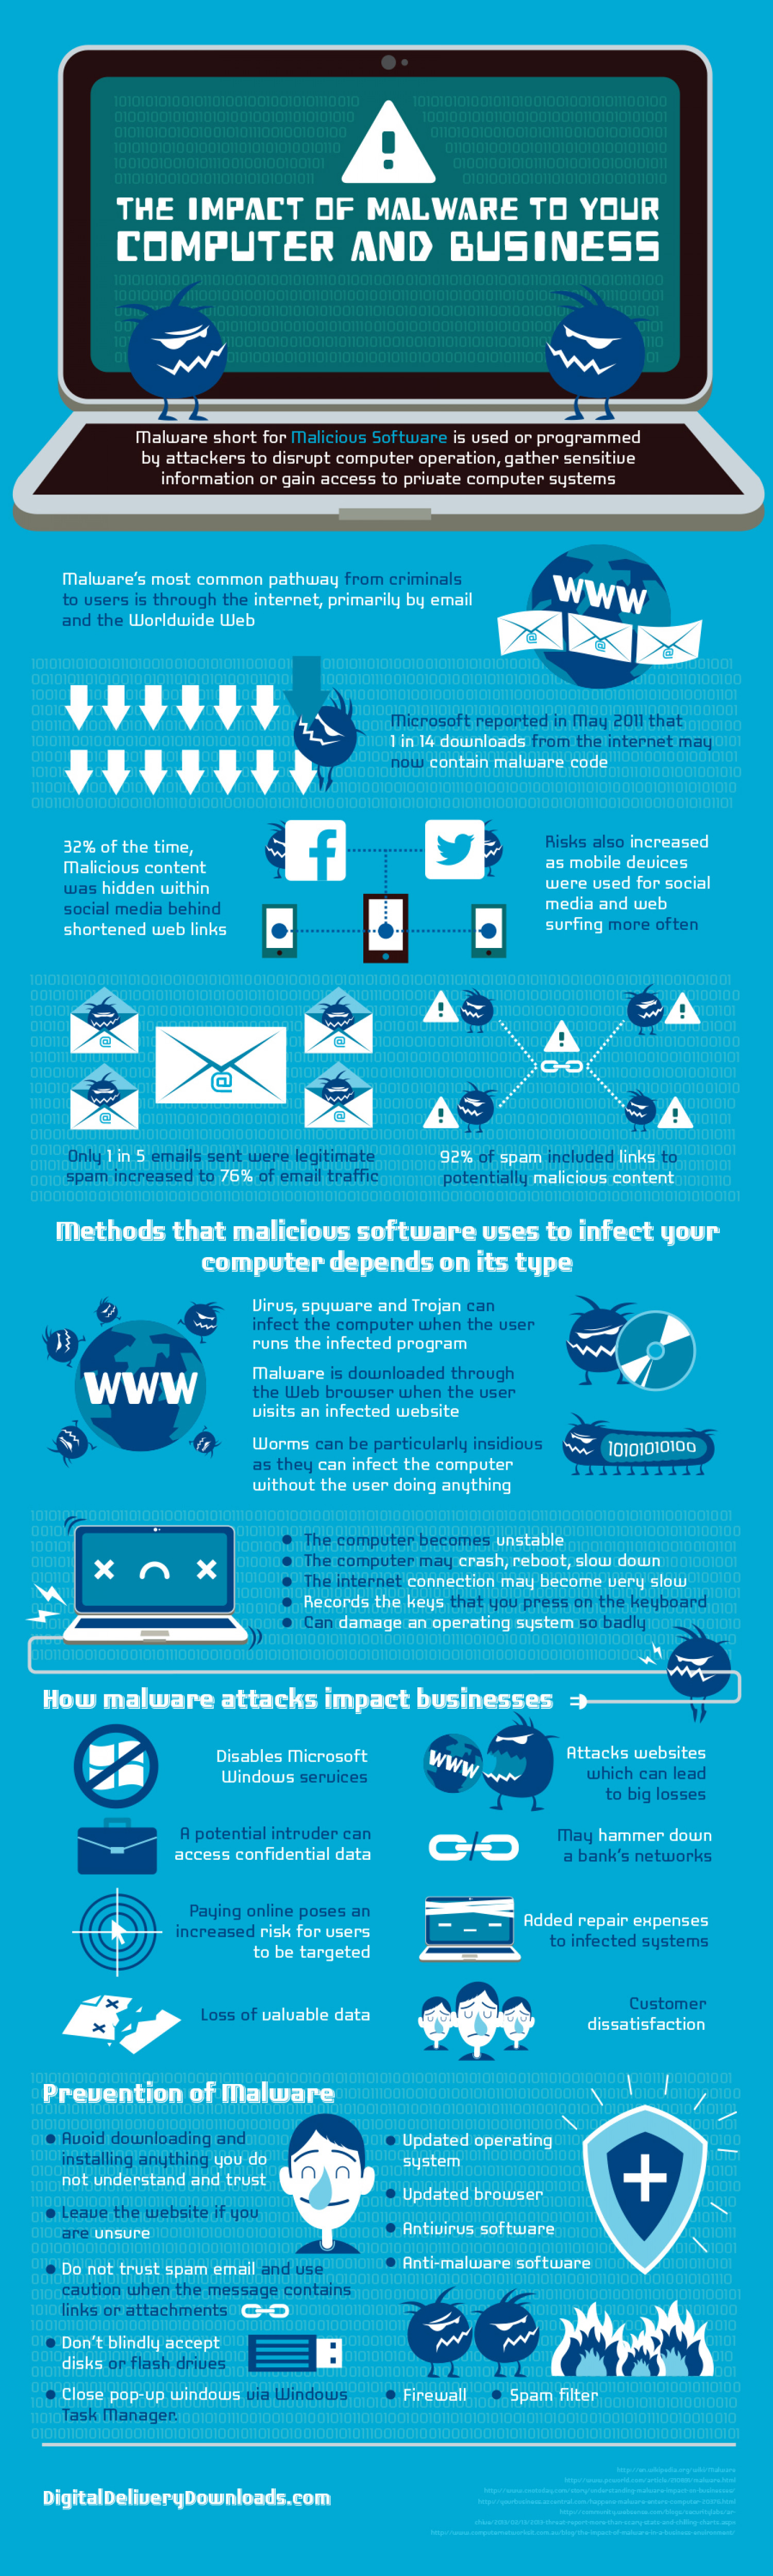 The Impact of Malware to Your Computer ans Business Infographic